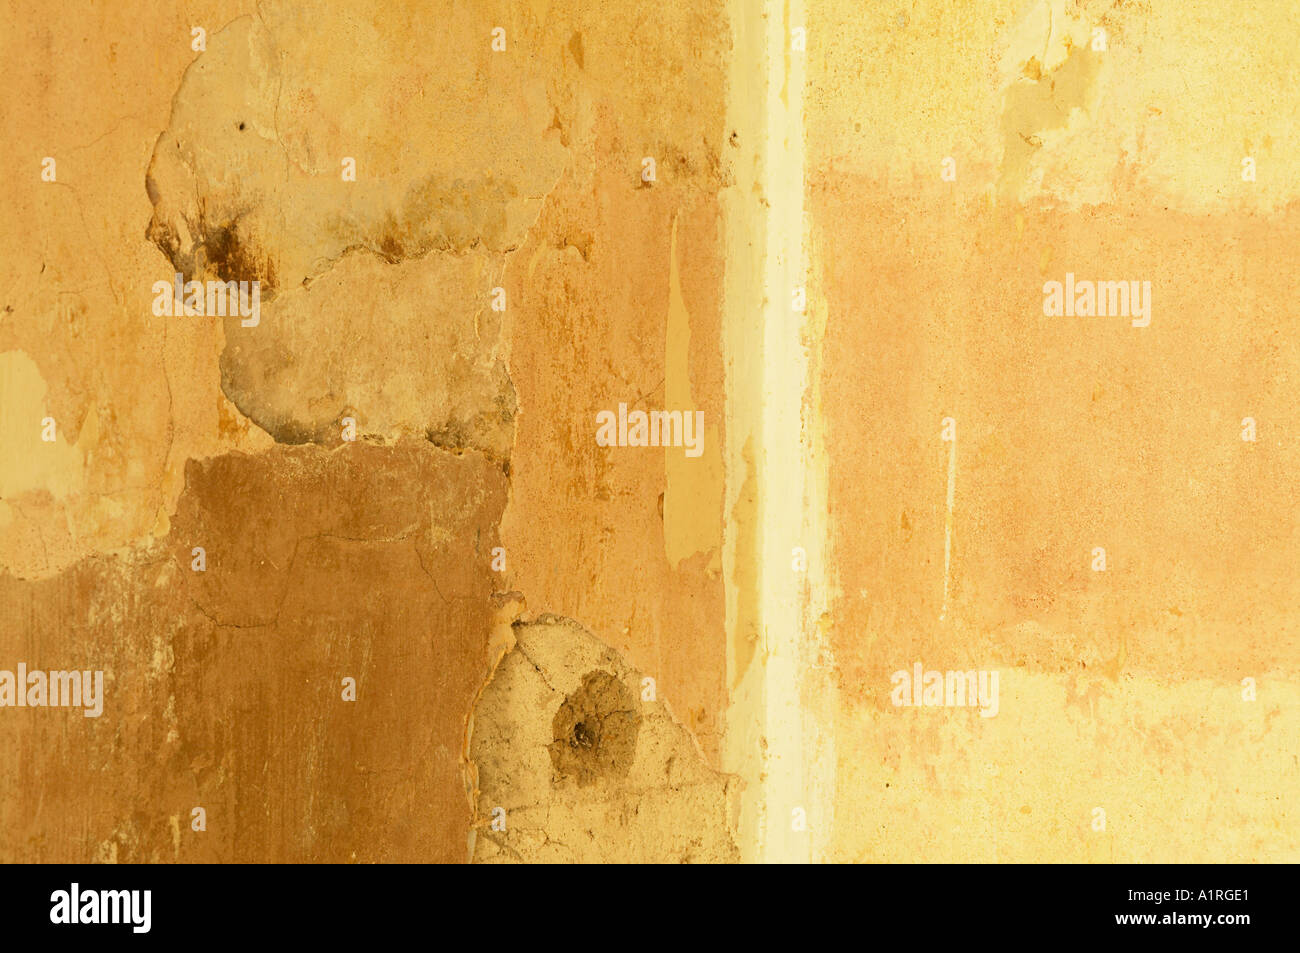 close up of texture on old wall - Stock Image